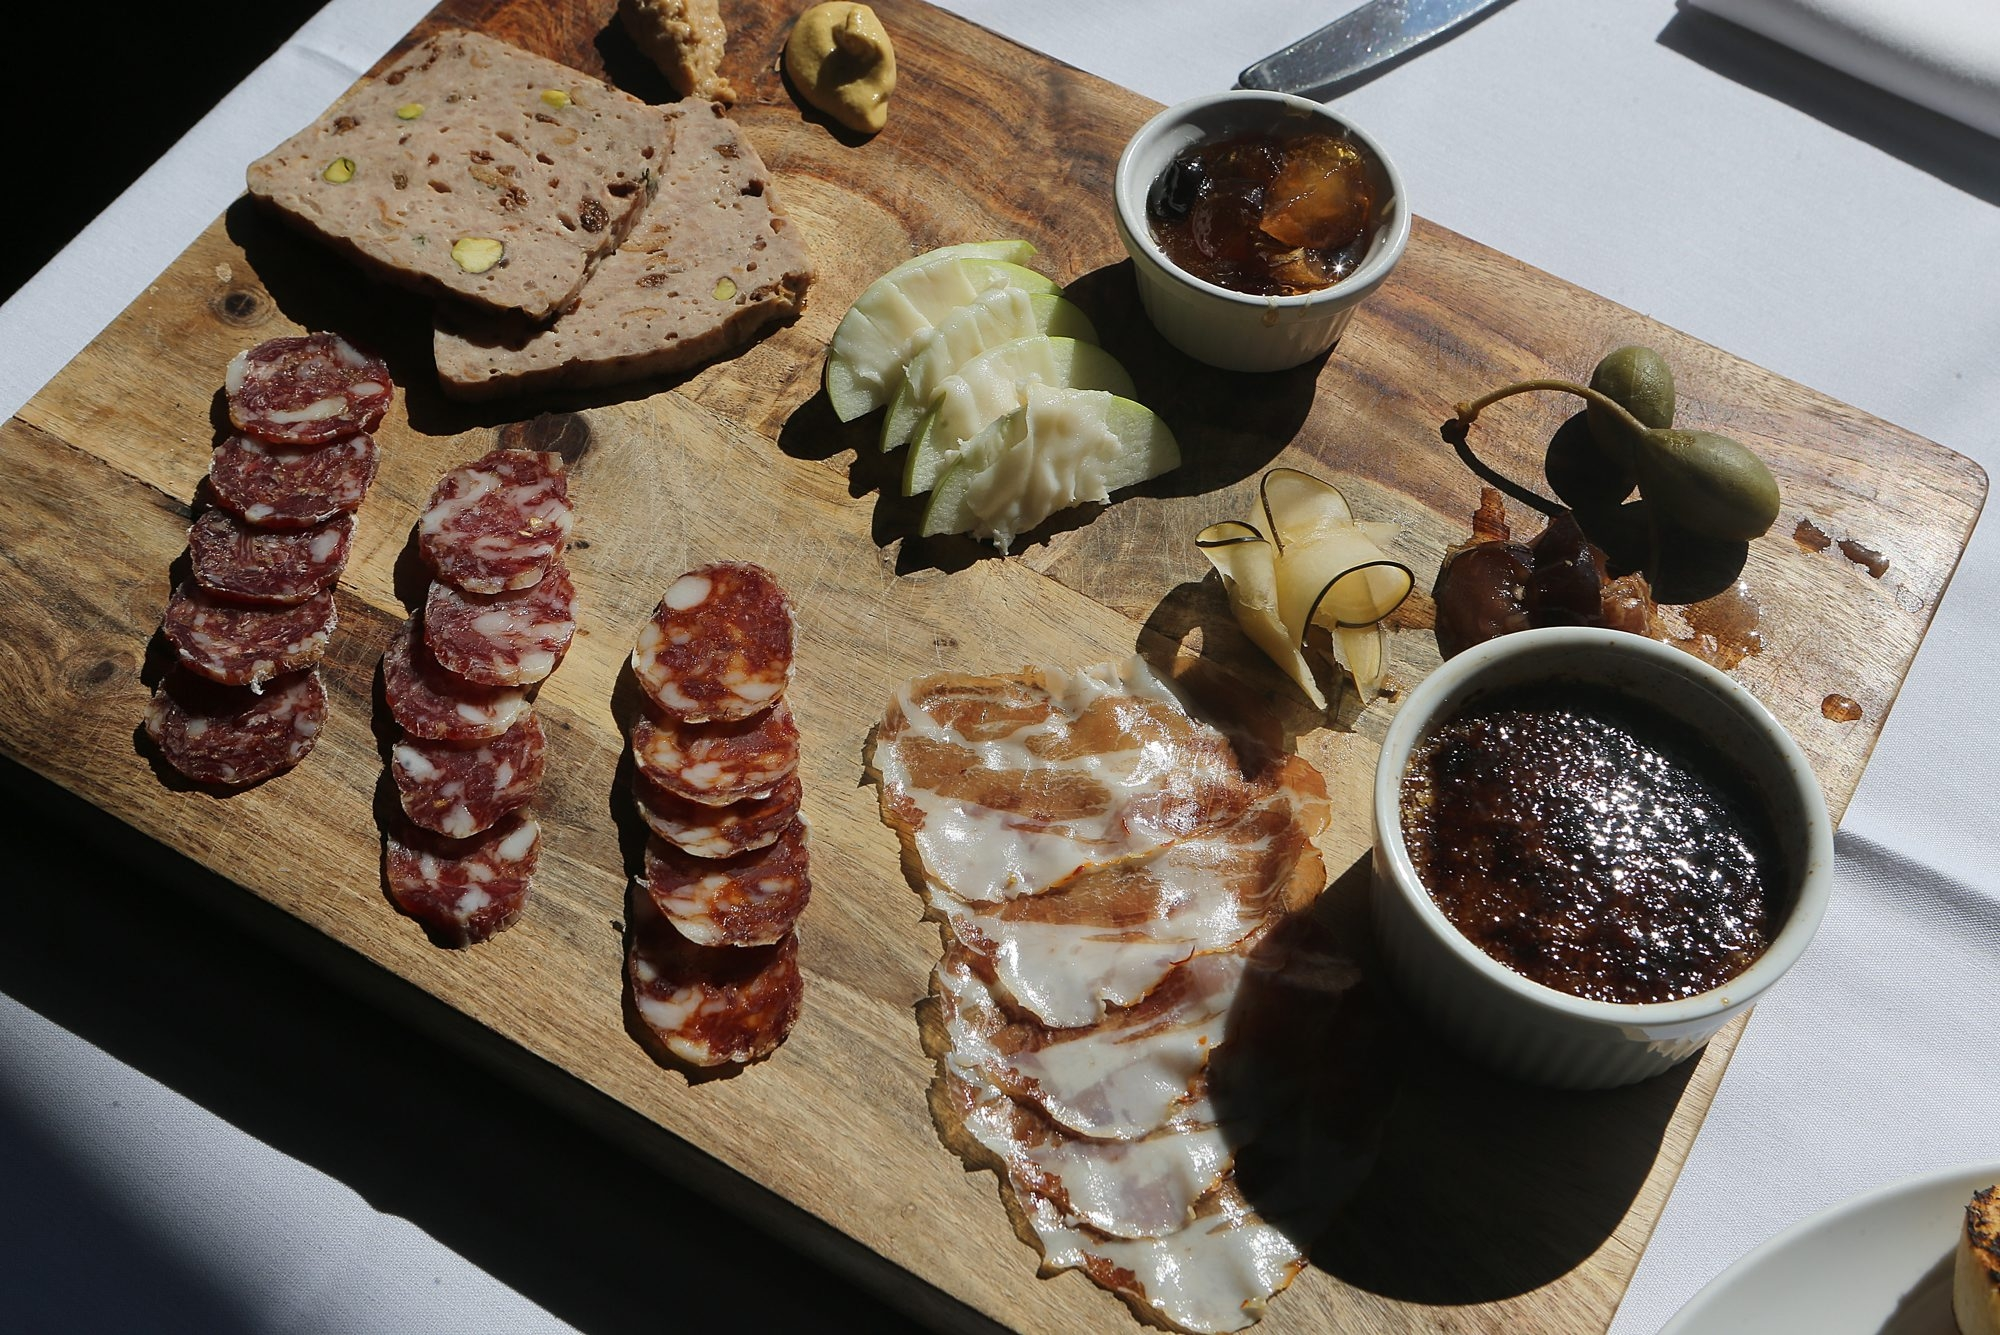 The popular charcuterie platter at Tabree restaurant in Snyder features a sampling of cured meats.